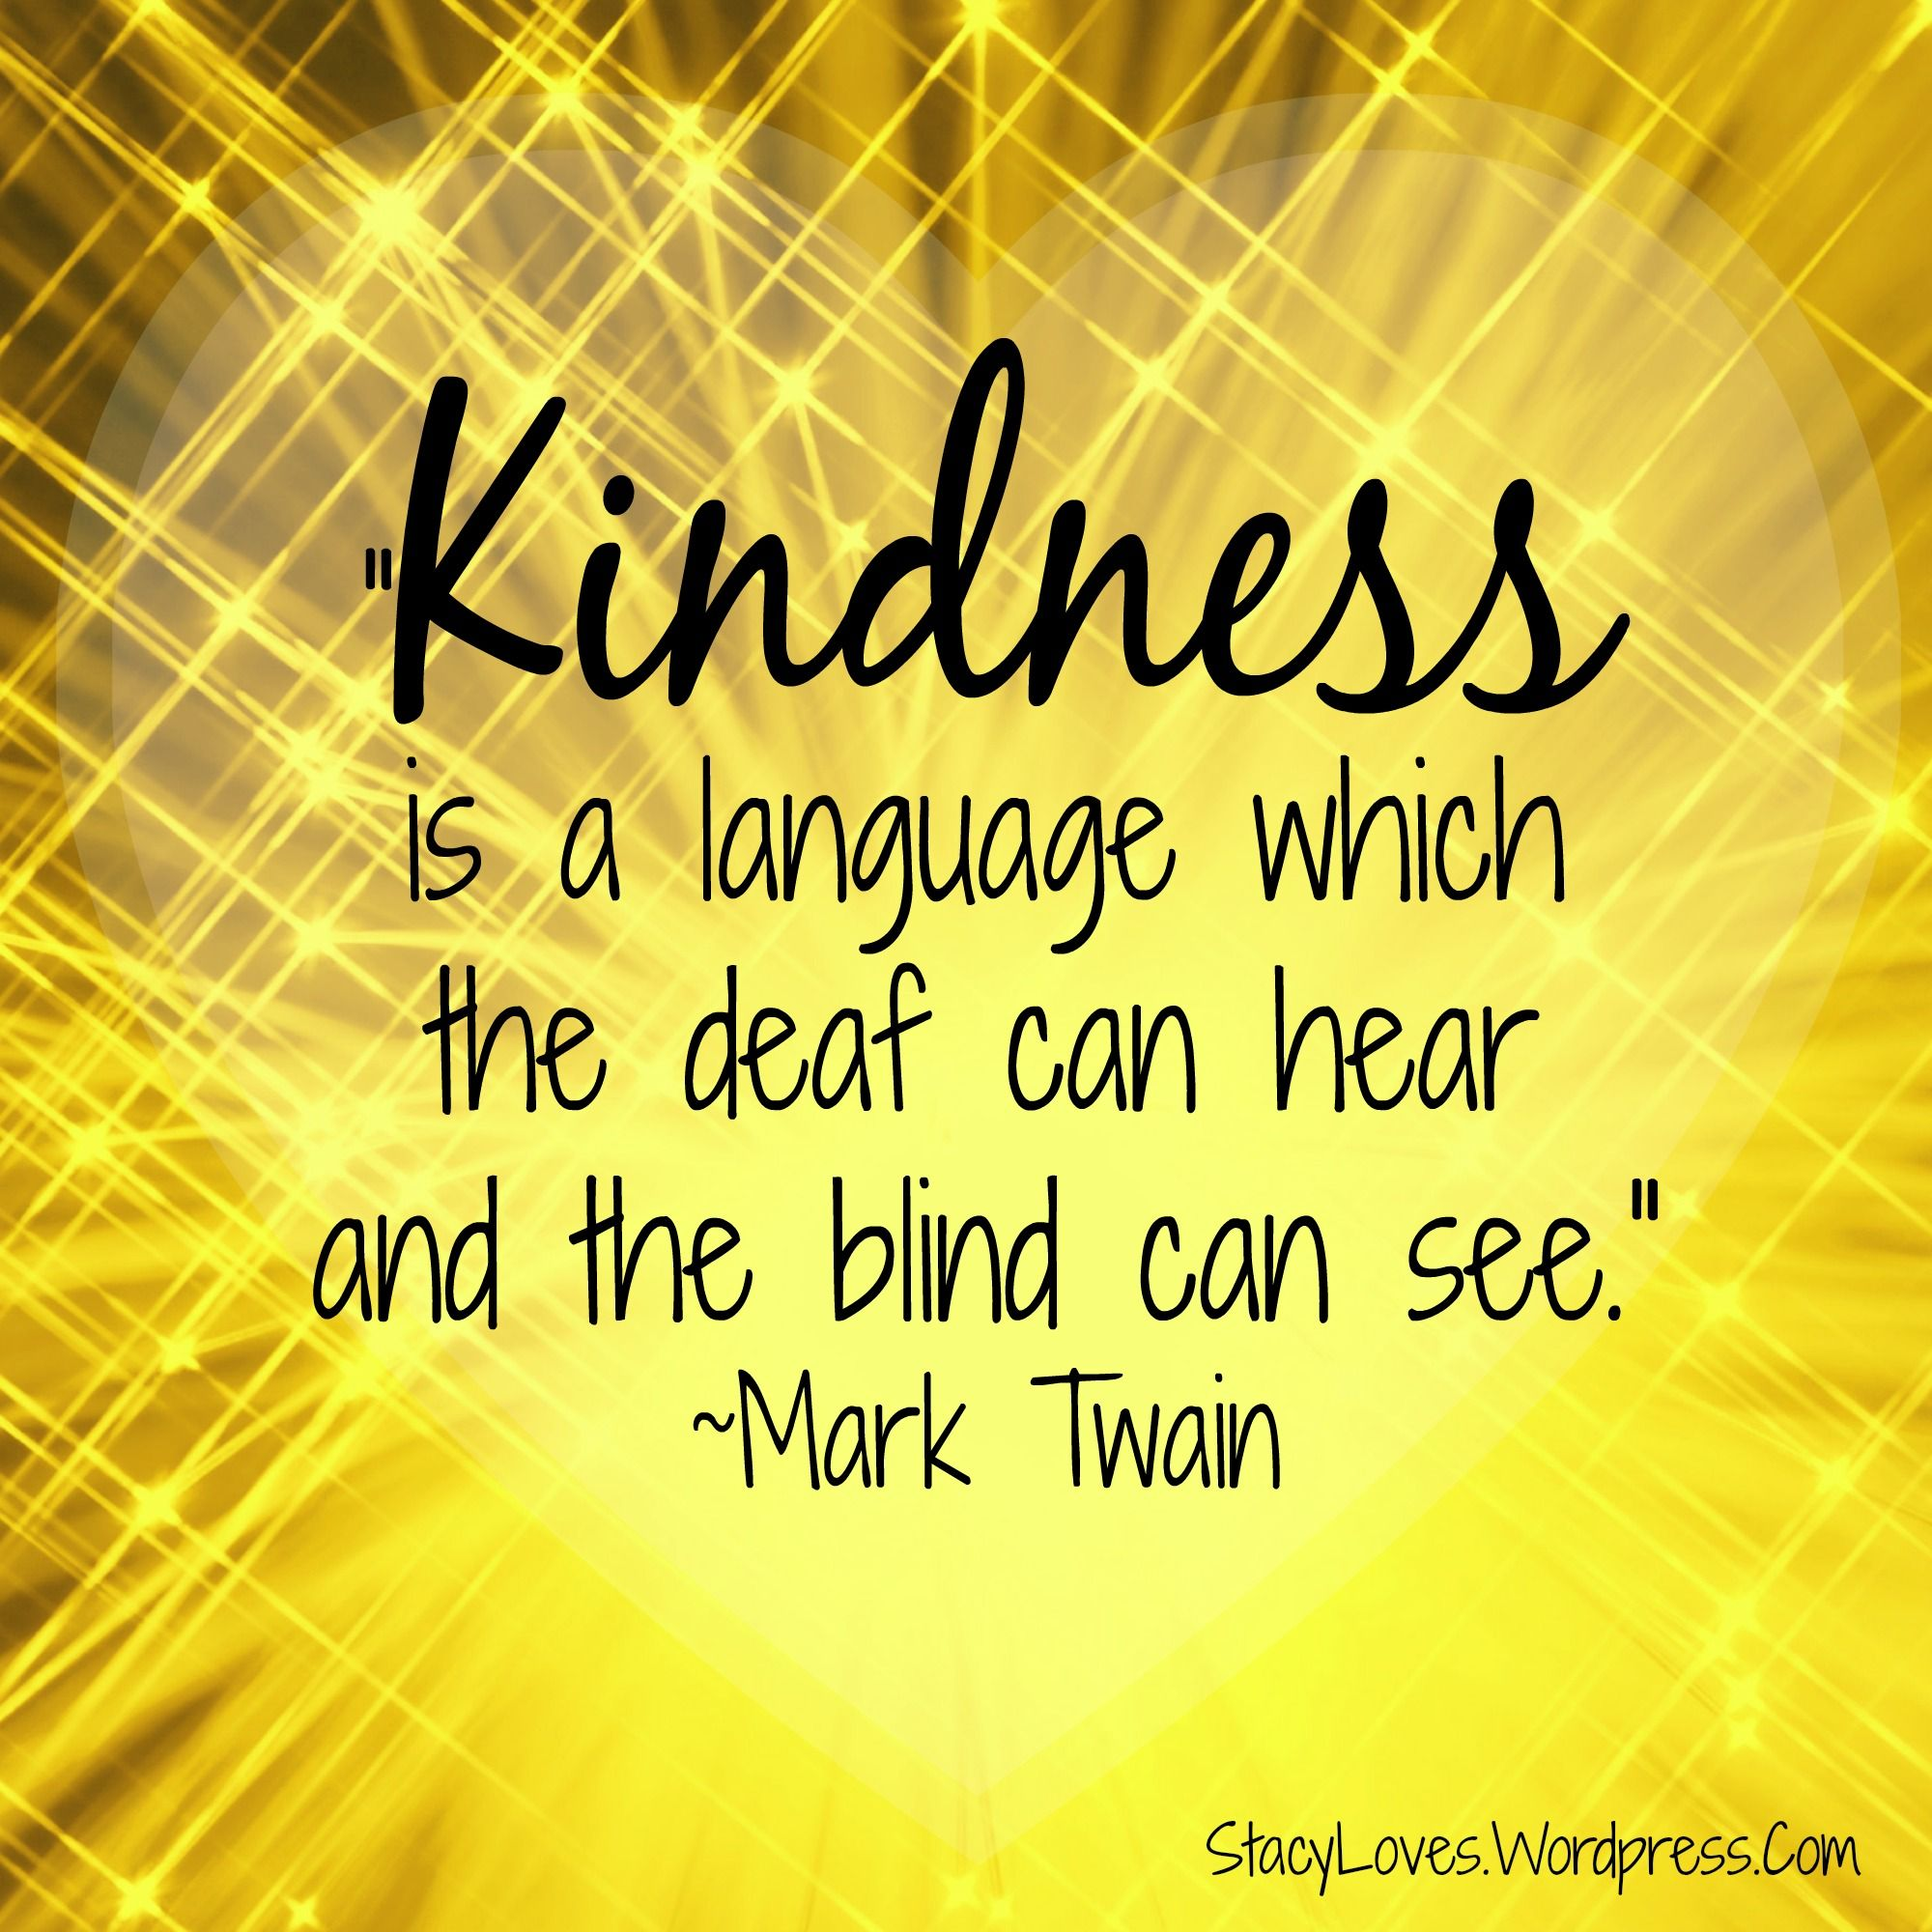 Act Of Kindness Quotes February Acts Of Kindness Challenge 2015  Mark Twain Kindness